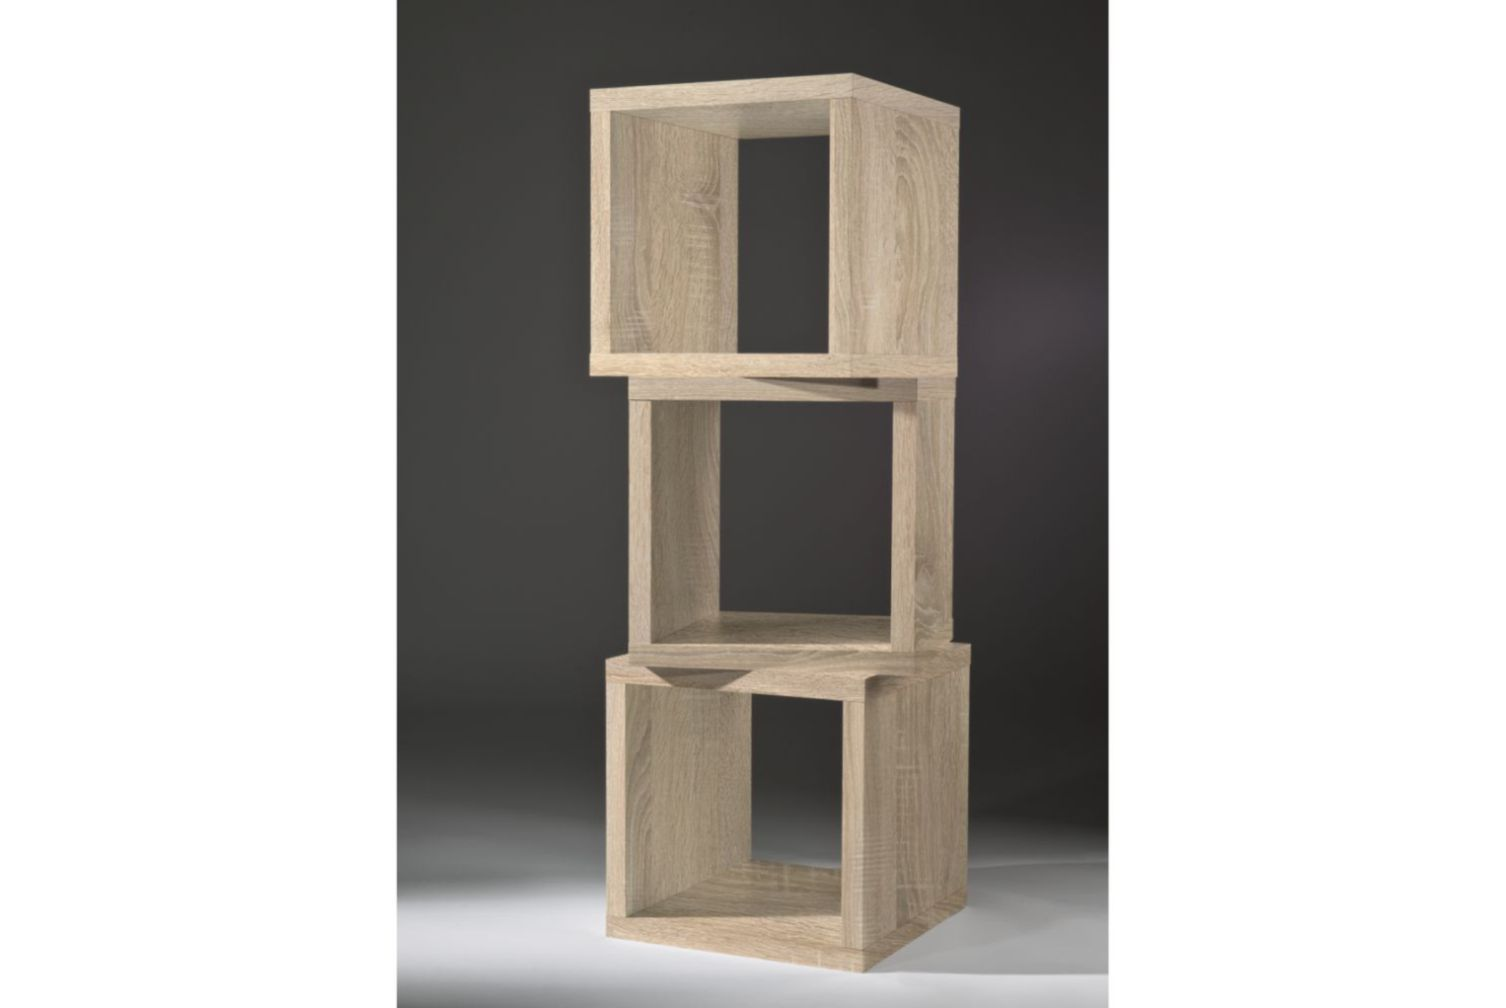 w rfel wandregal cubes regale wandregale modern h ngeregale neu ebay. Black Bedroom Furniture Sets. Home Design Ideas